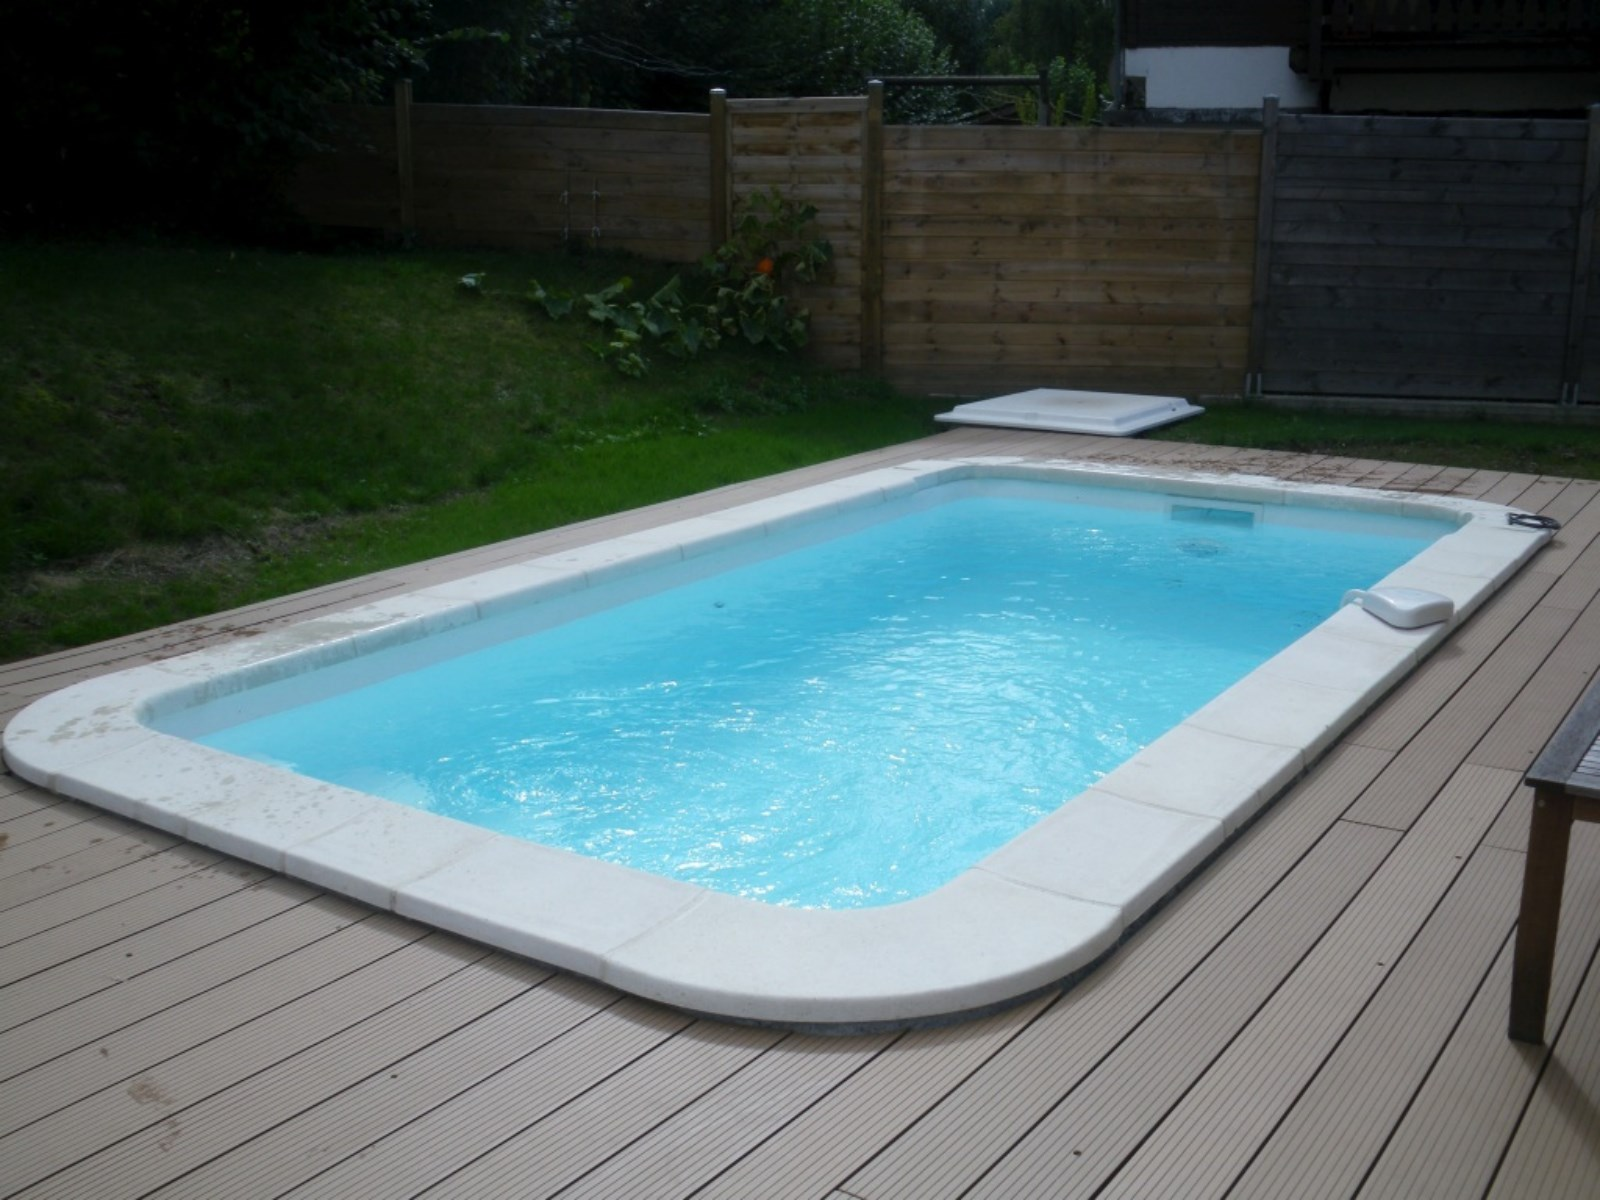 Piscine coque polyester mod le minorque grenoble avec for Mini piscine rectangulaire